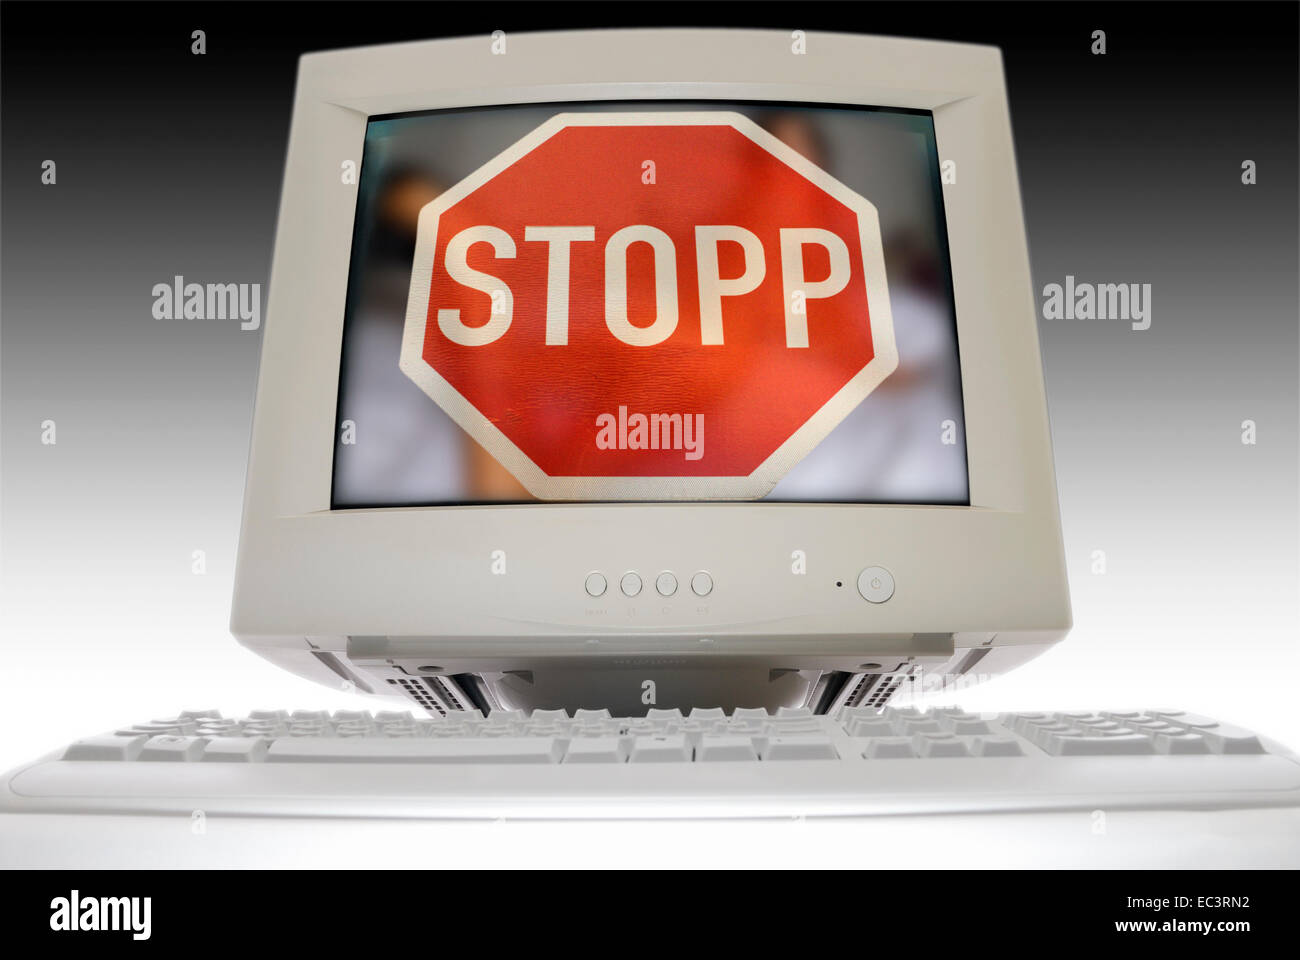 Computer monitor and stop sign, illegal websites - Stock Image